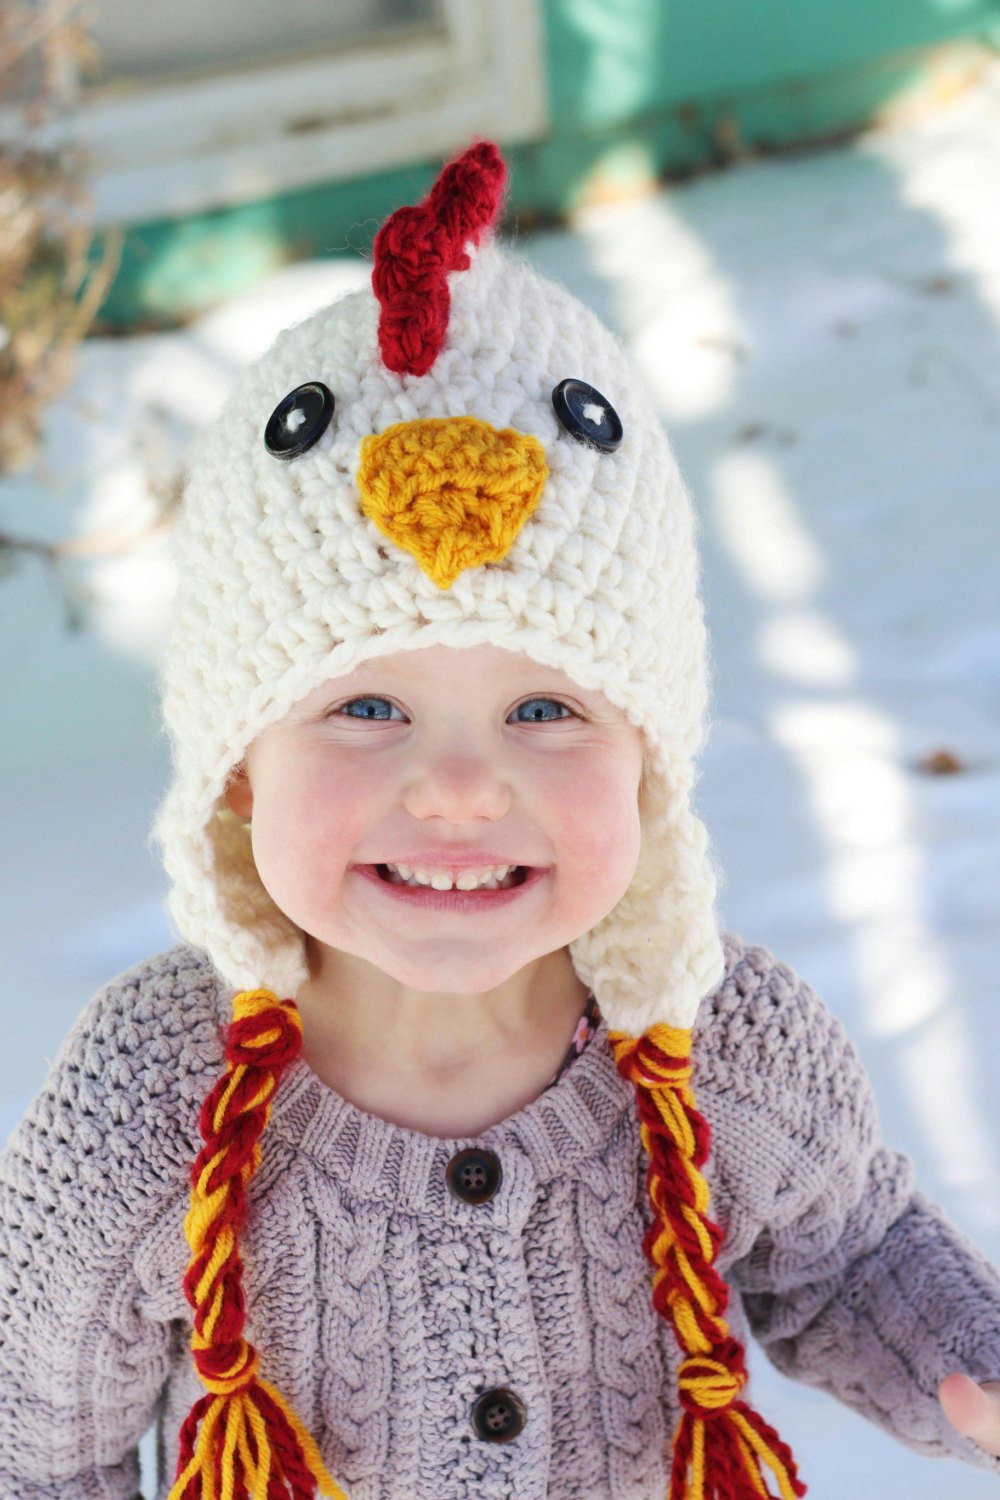 Awesome Chicken Hat Pdf Crochet Pattern Photo Prop Winter Hat Baby Chicken Hat Of Lovely Chicken Hat Crochet Pattern Baby Chicken Hat